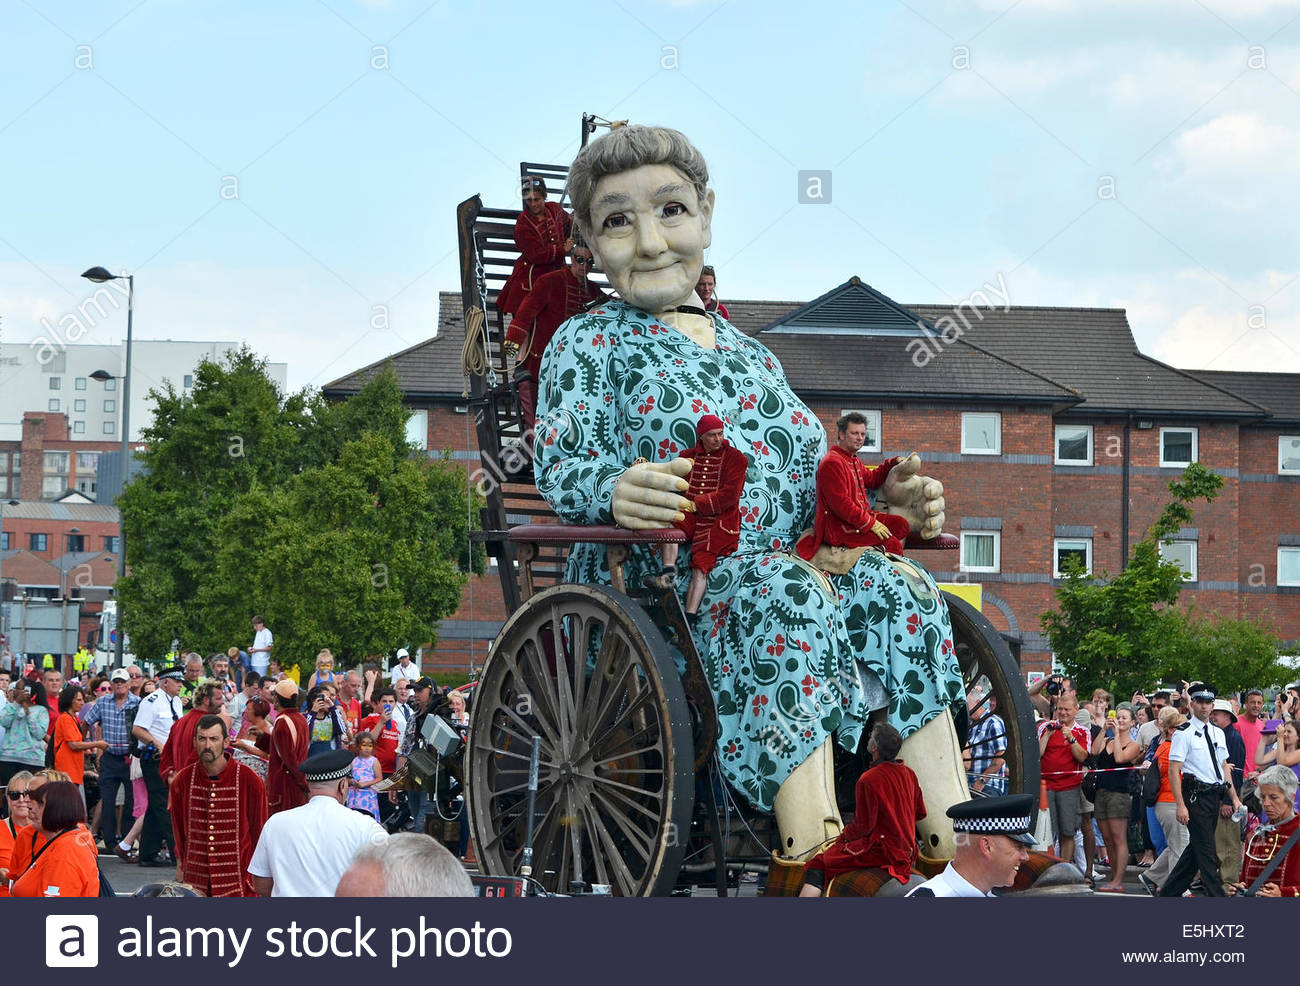 ' Grandma ' one of the Royal de Luxe giants in Liverpool, UK as part of the world war 1 centenary commemorations - Stock Image